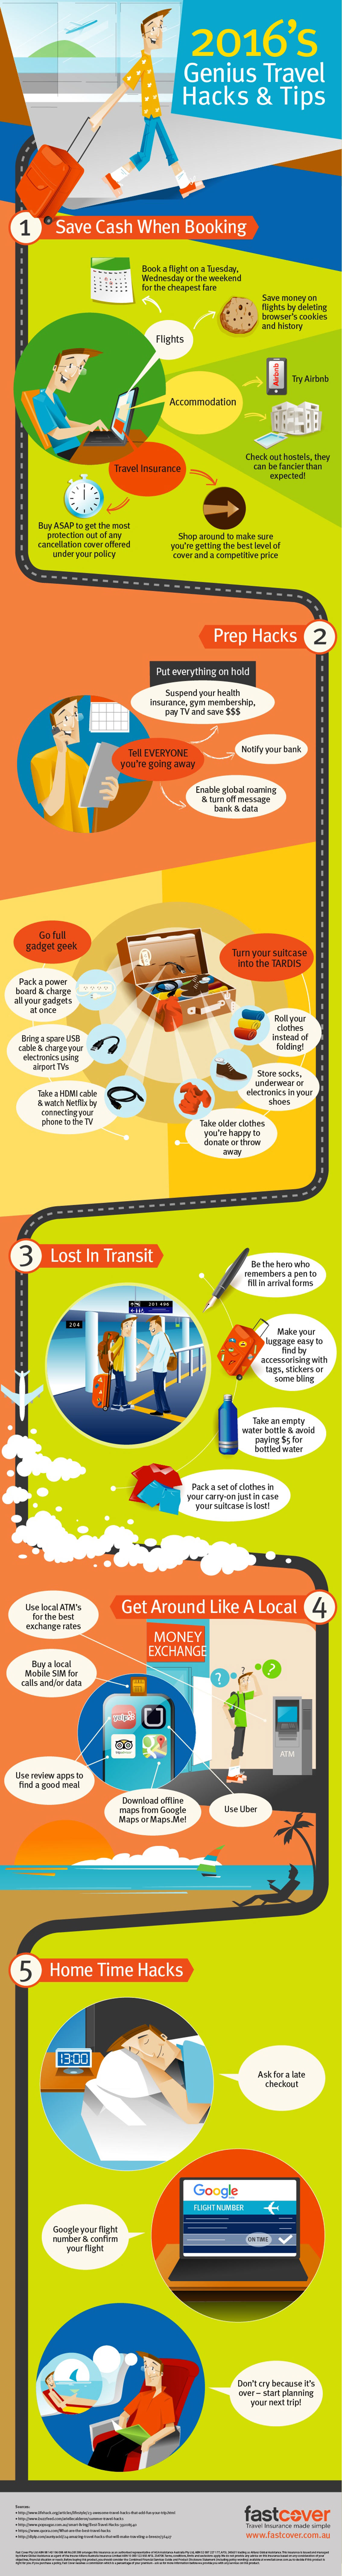 Genius Travel Hacks And Tips For 2016 Infographic